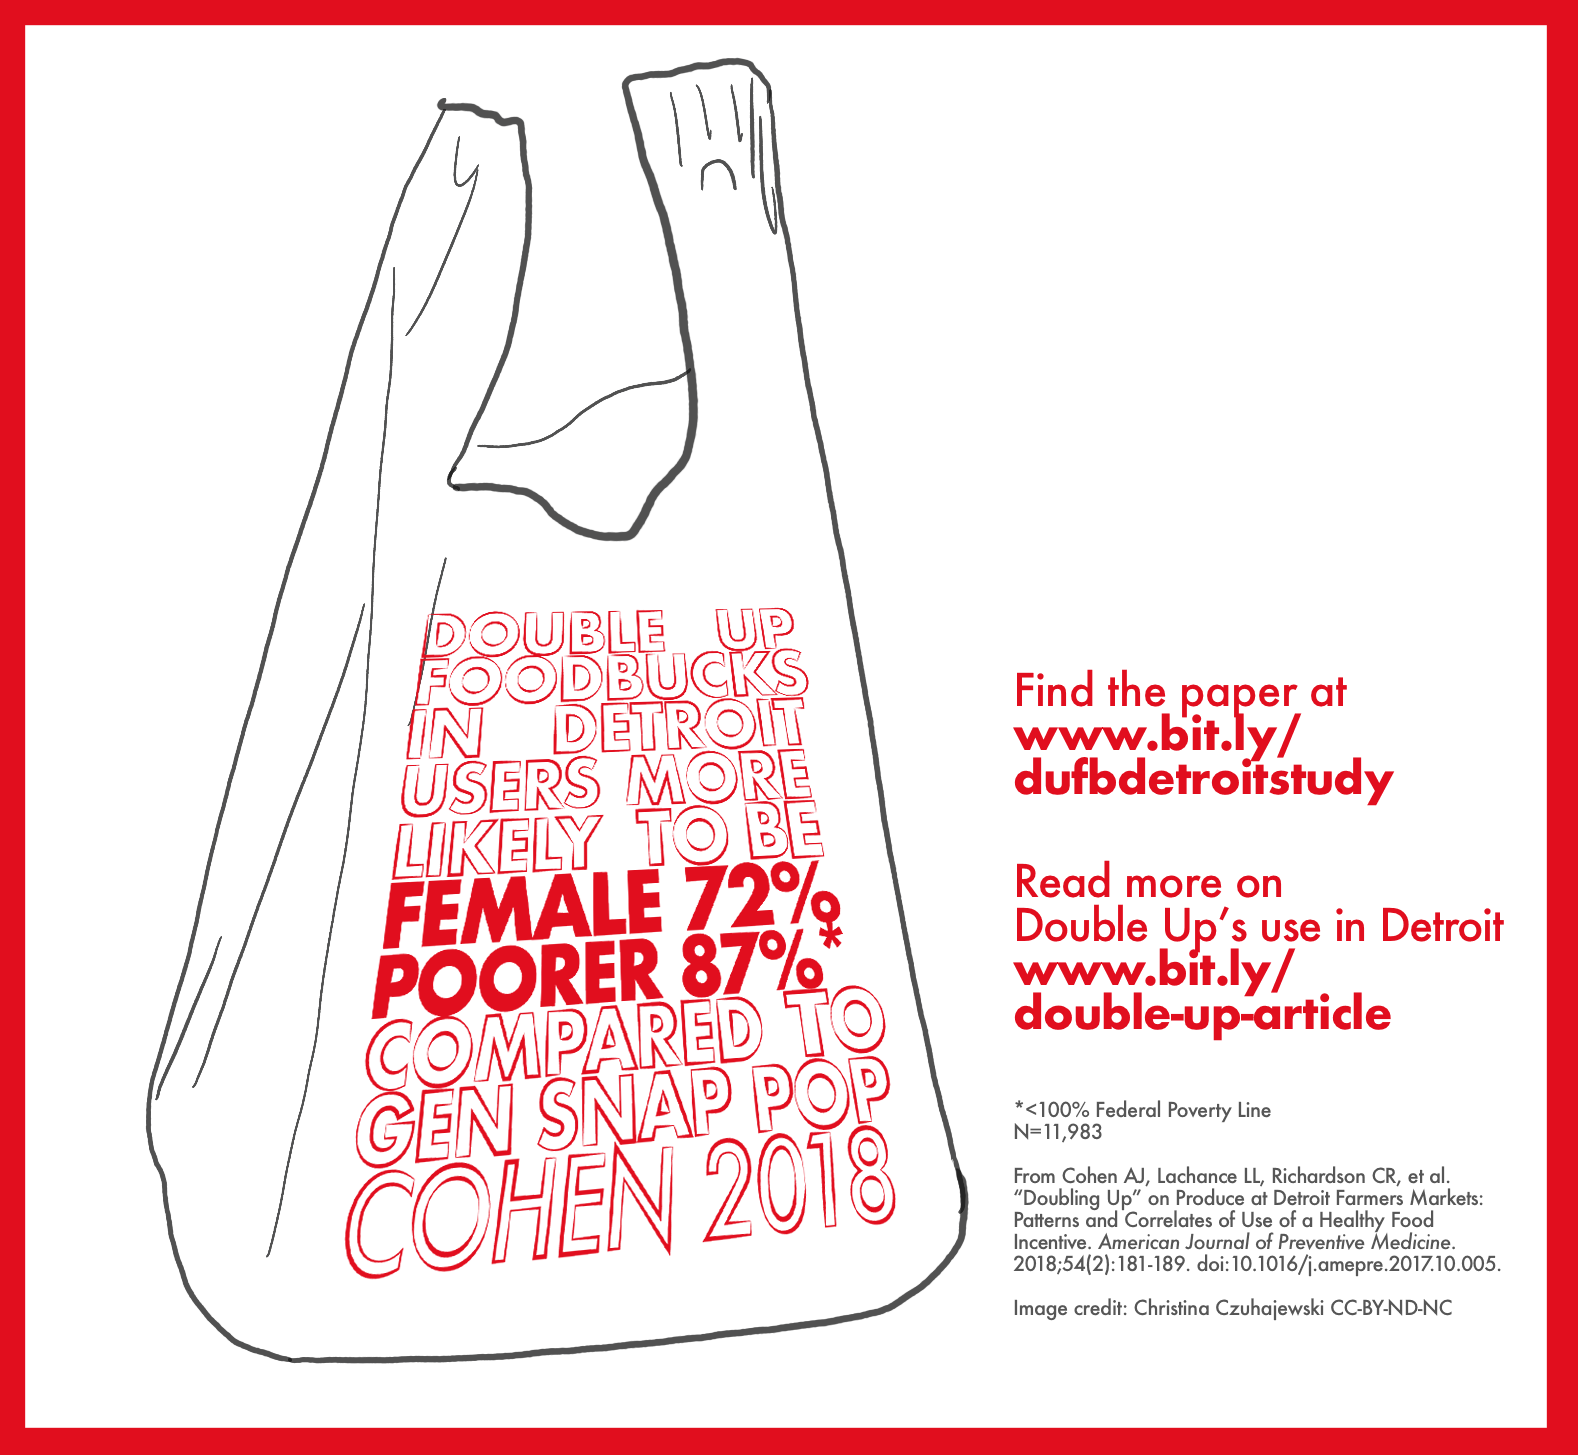 image of plastic bag with infographic text: double up fooducks in detroit users more likely to be female pooer compared to gen snap pop cohen 2018